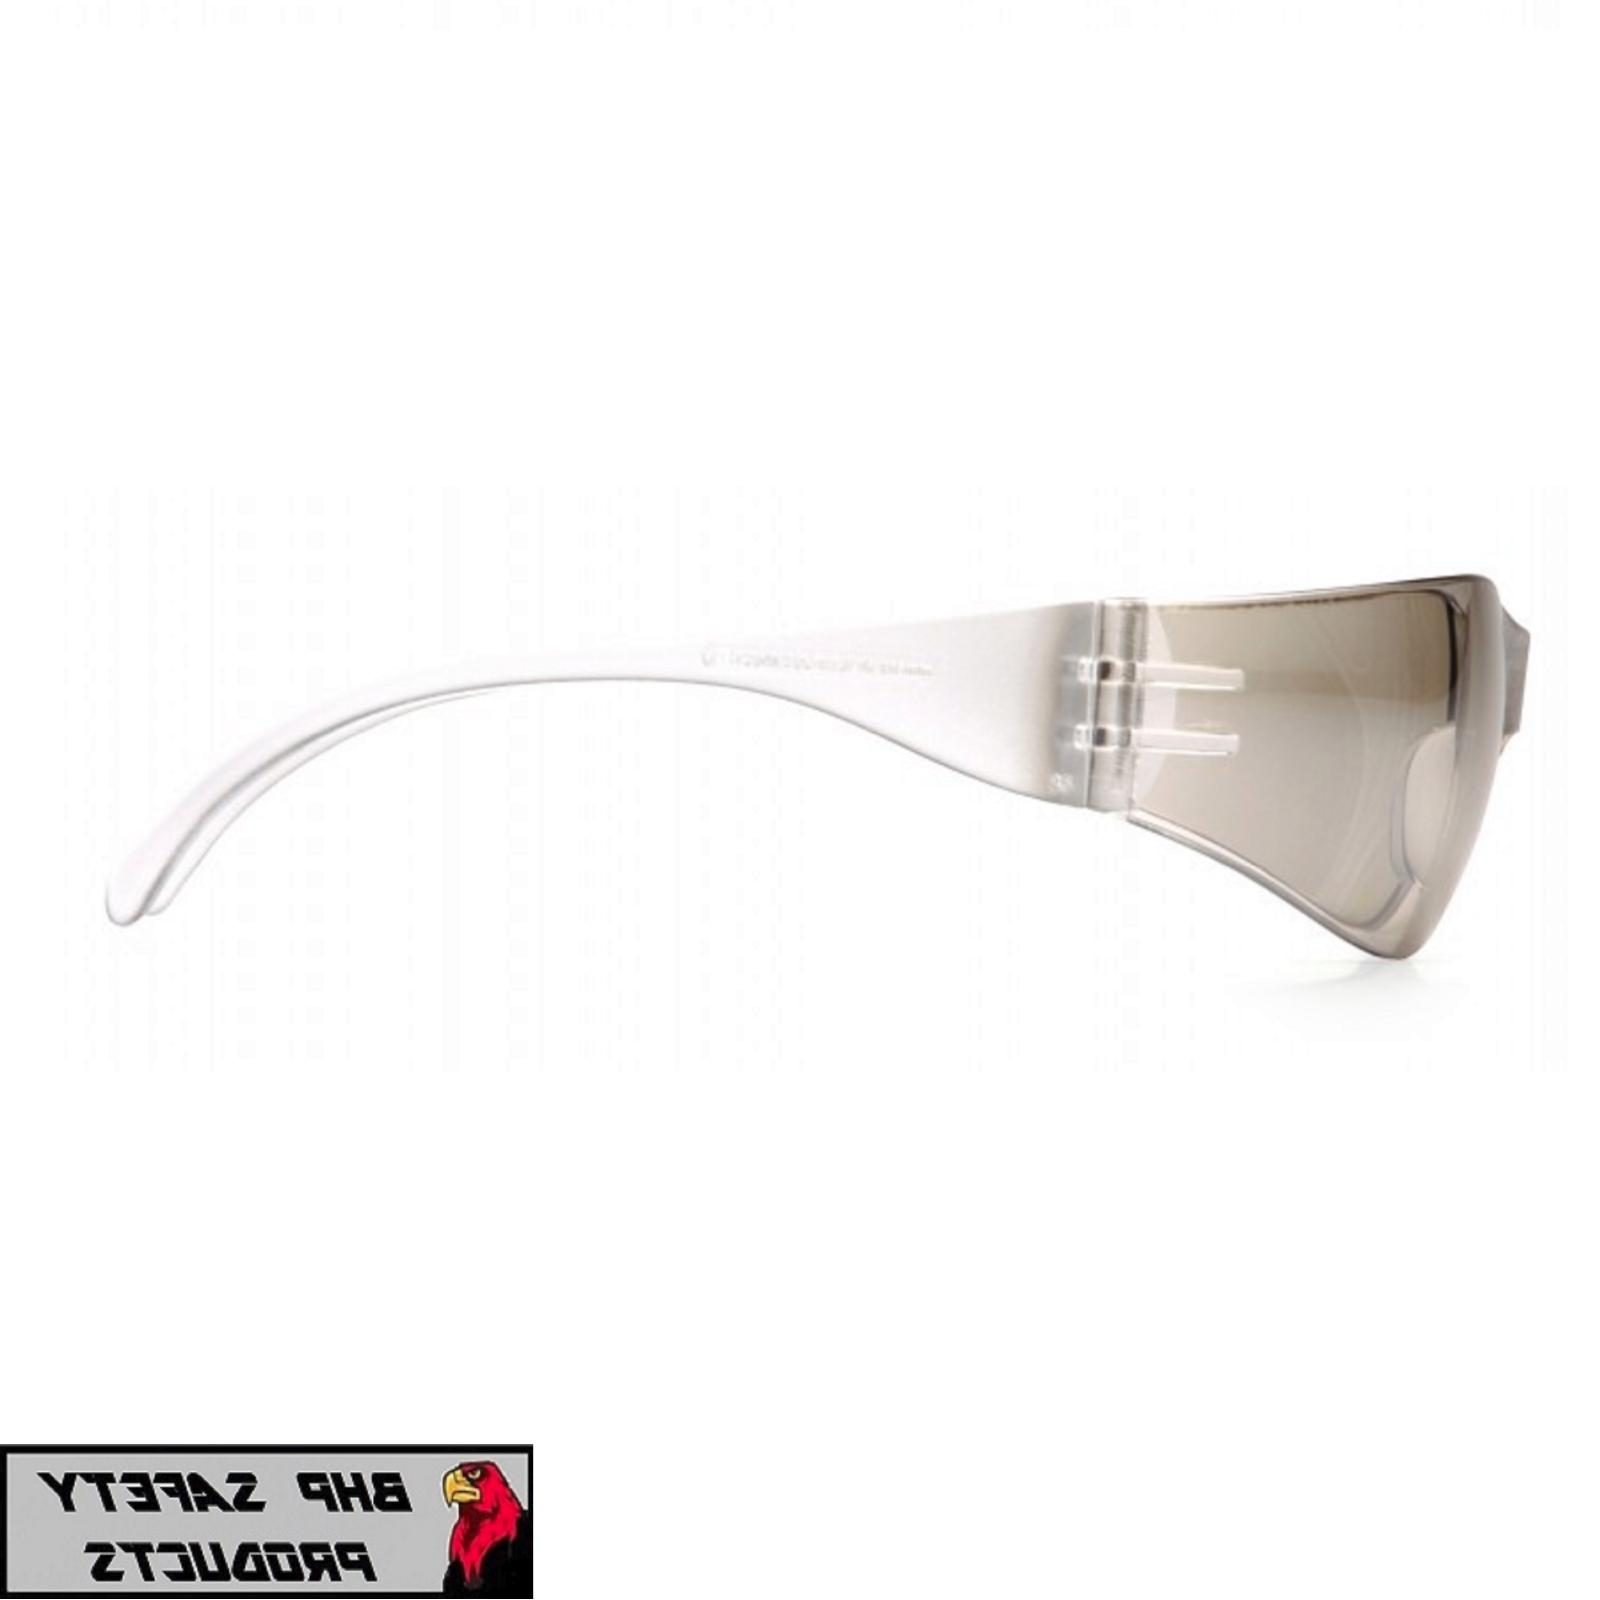 PYRAMEX SAFETY GLASSES INDOOR/OUTDOOR MIRROR S4180S